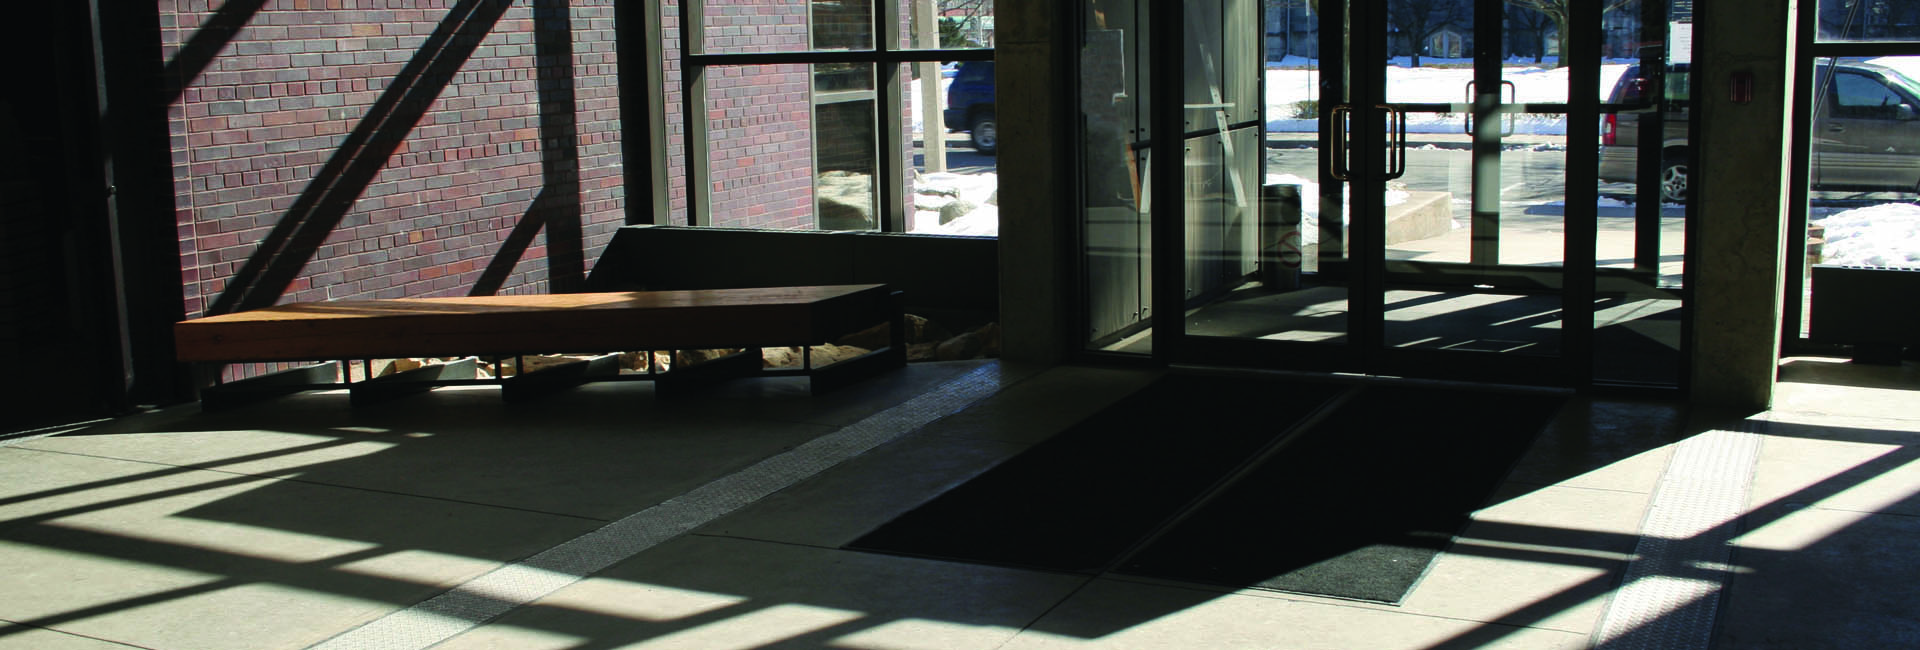 entrance matting service Ottawa